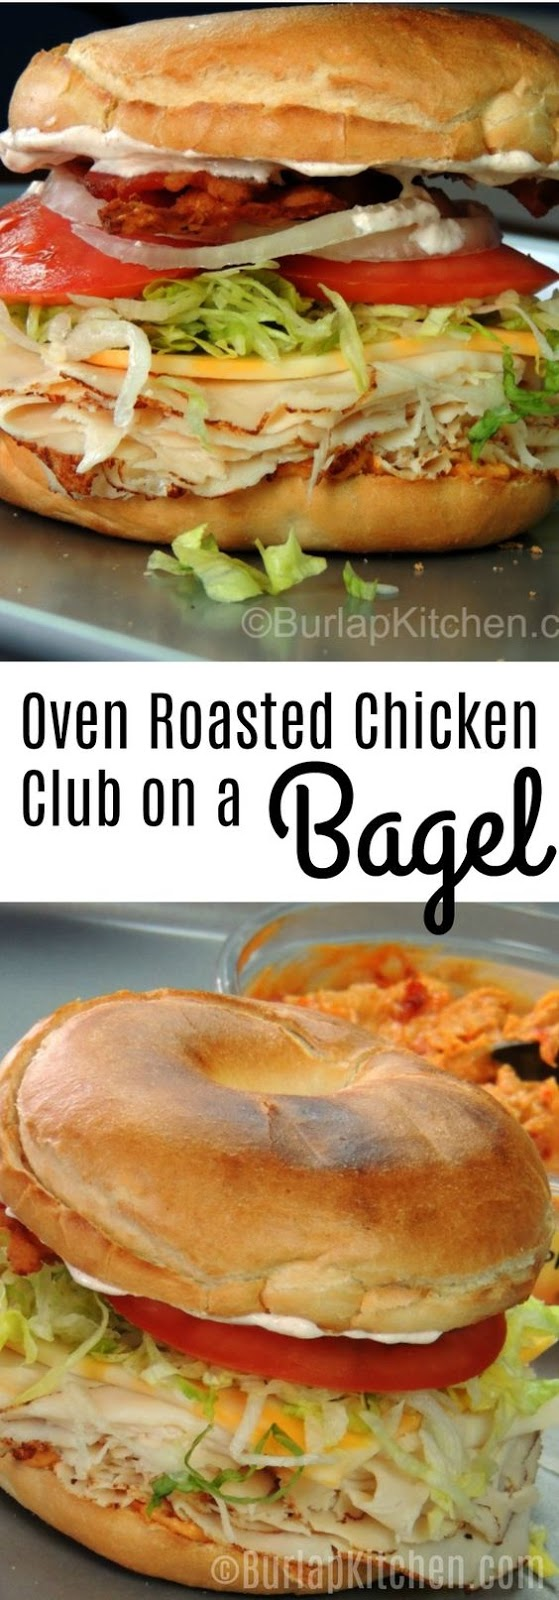 OVEN ROASTED CHICKEN CLUB ON A BAGEL